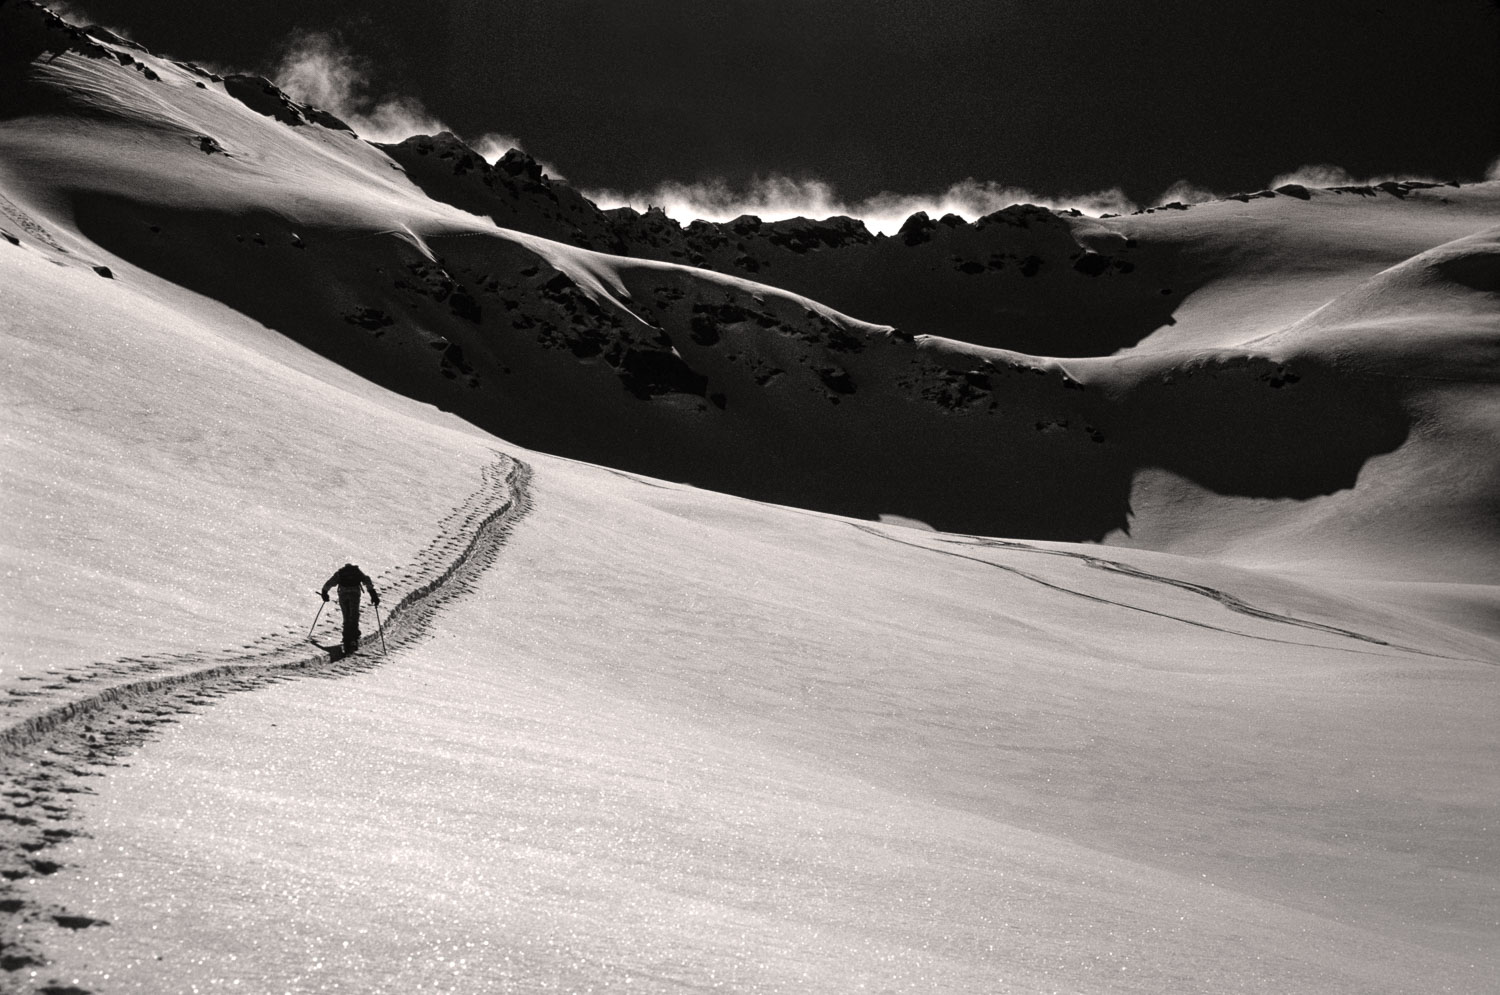 Black and White B &W Solo Skier Ascending Broads Fork in Wasatch